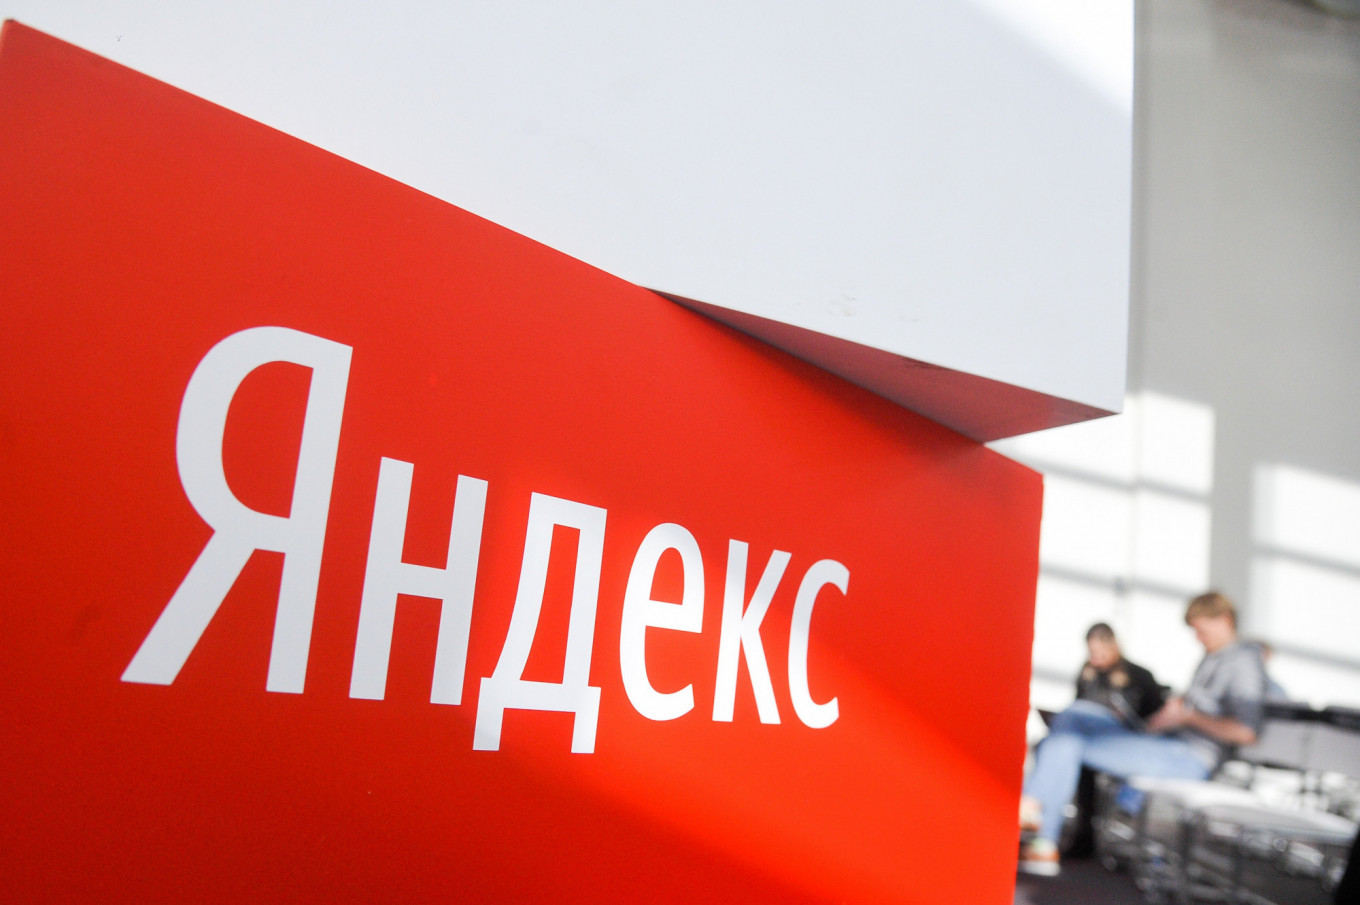 Russia's Yandex and Mail.Ru Report Strong Growth Despite Ownership Threats